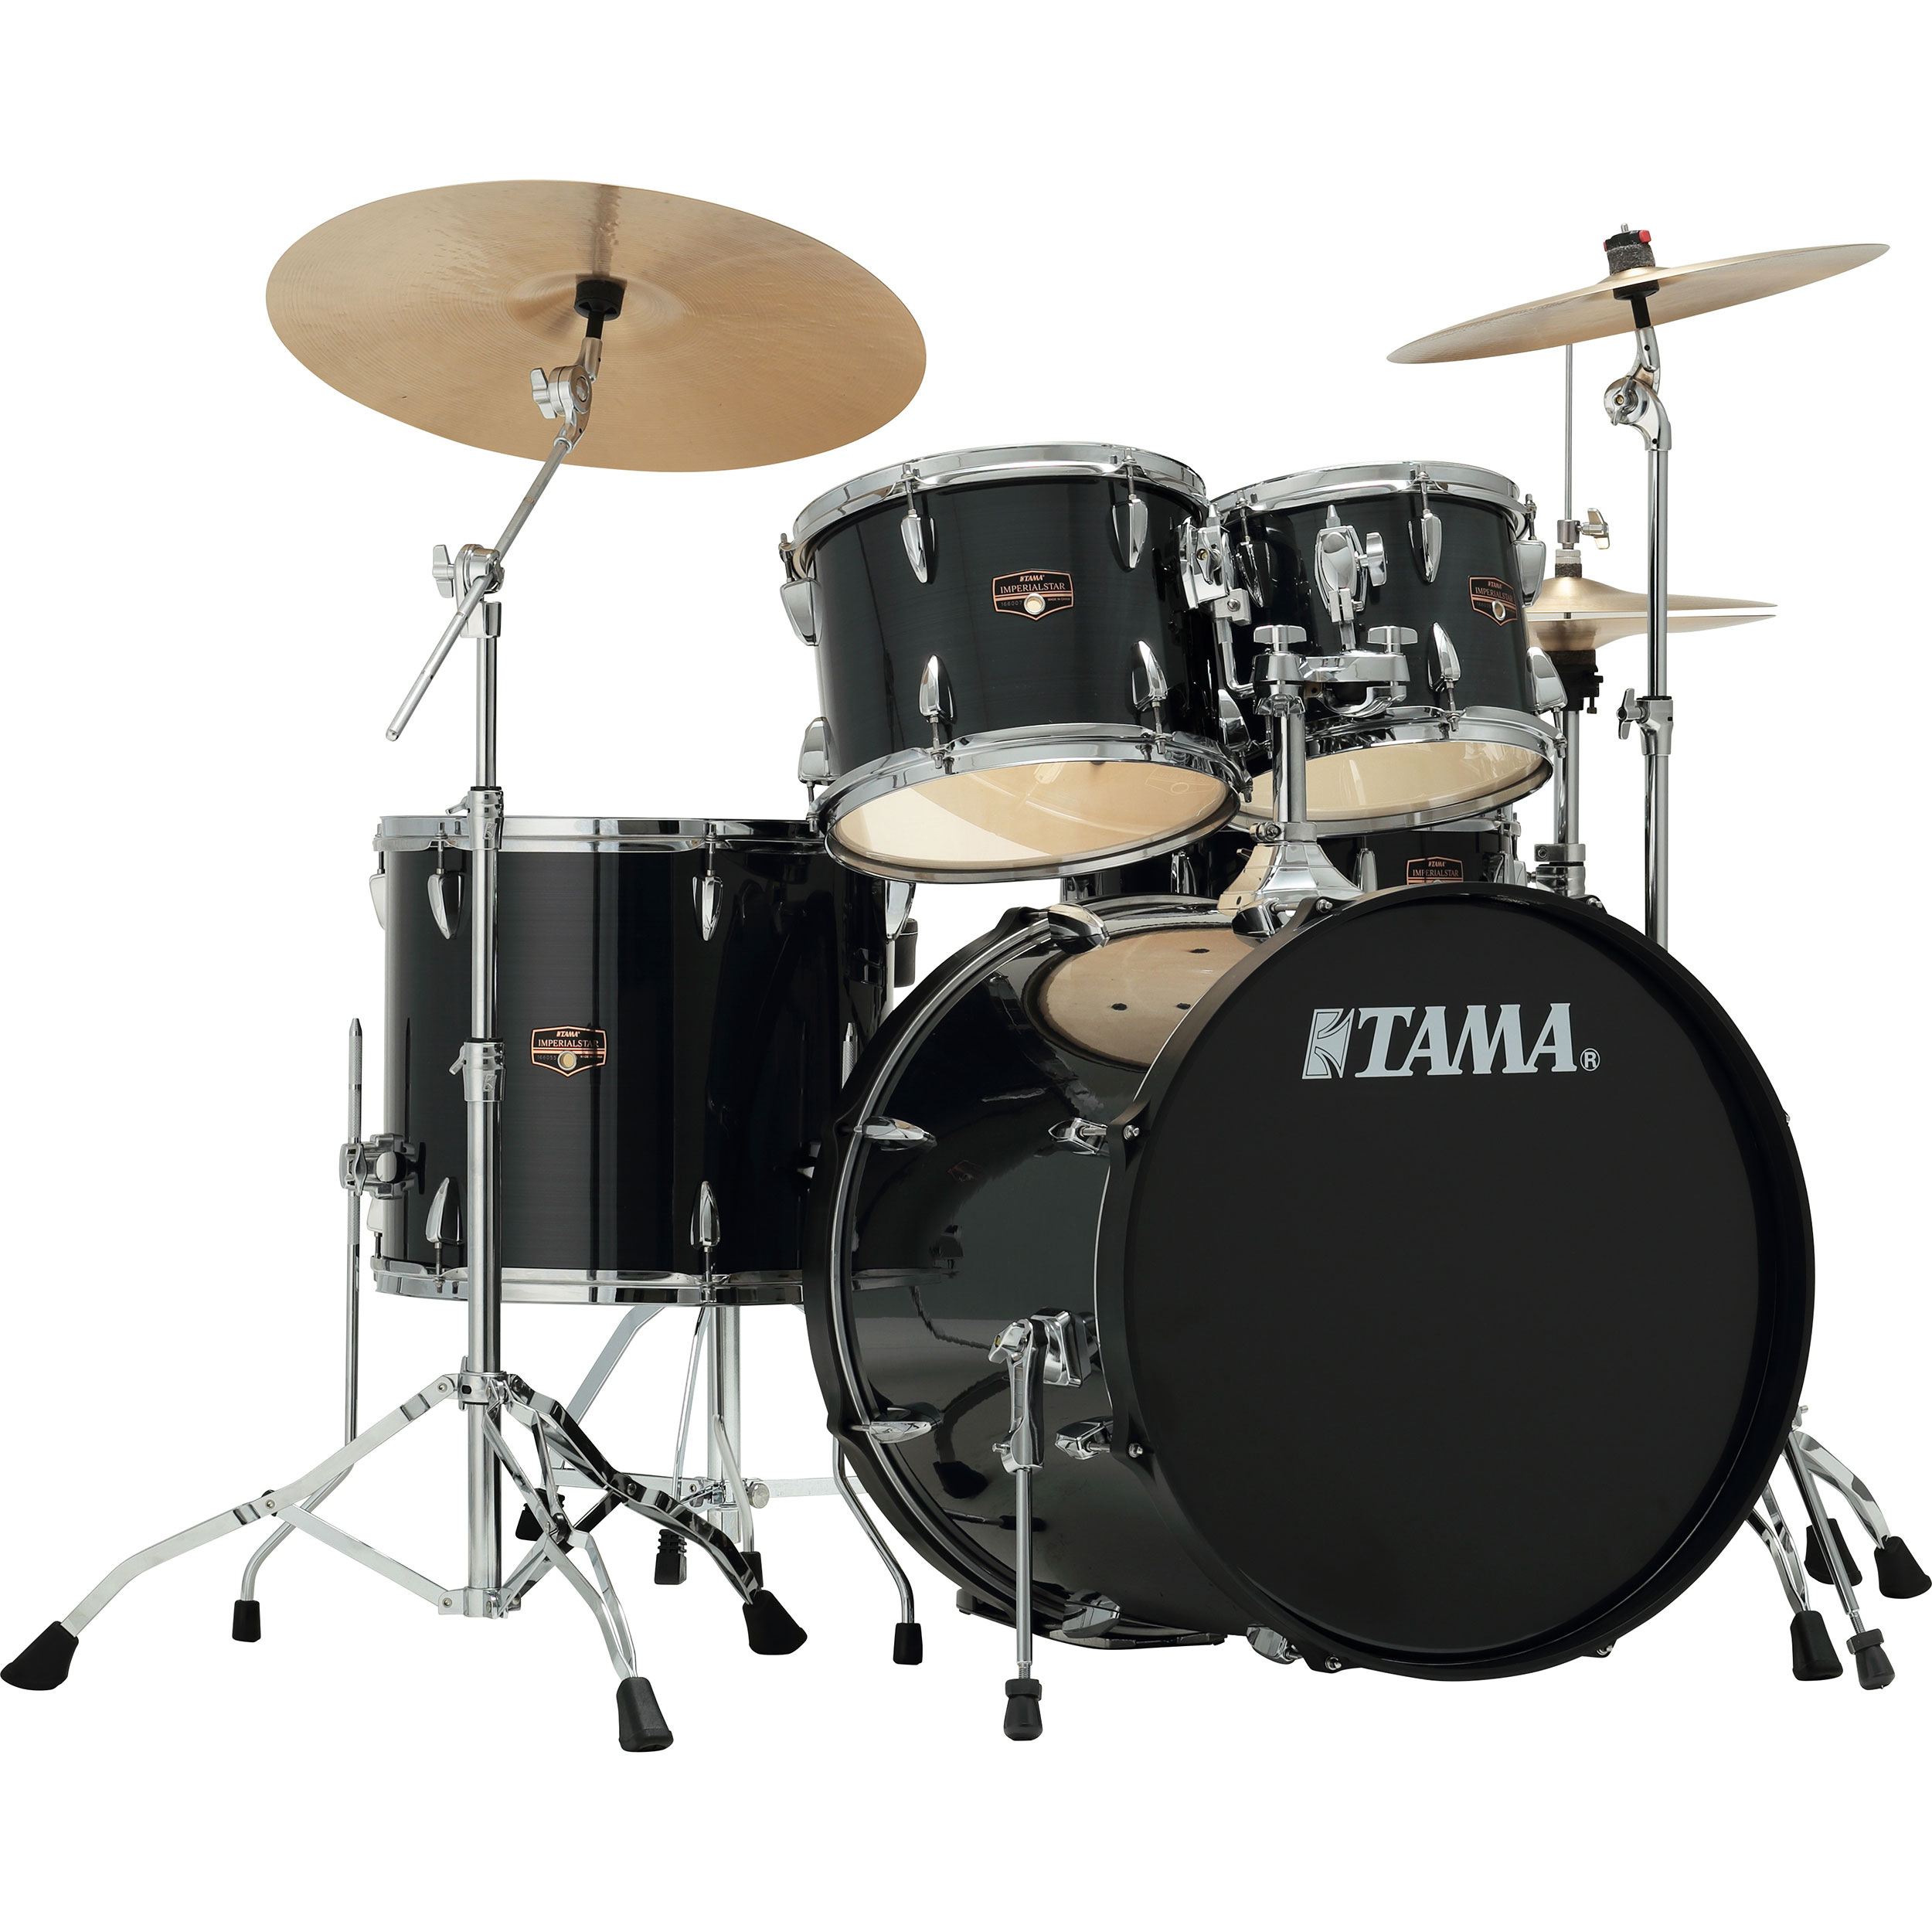 tama imperialstar 5 piece drum set with hardware and cymbals 22 bass 10 12 16 toms 14 snare. Black Bedroom Furniture Sets. Home Design Ideas